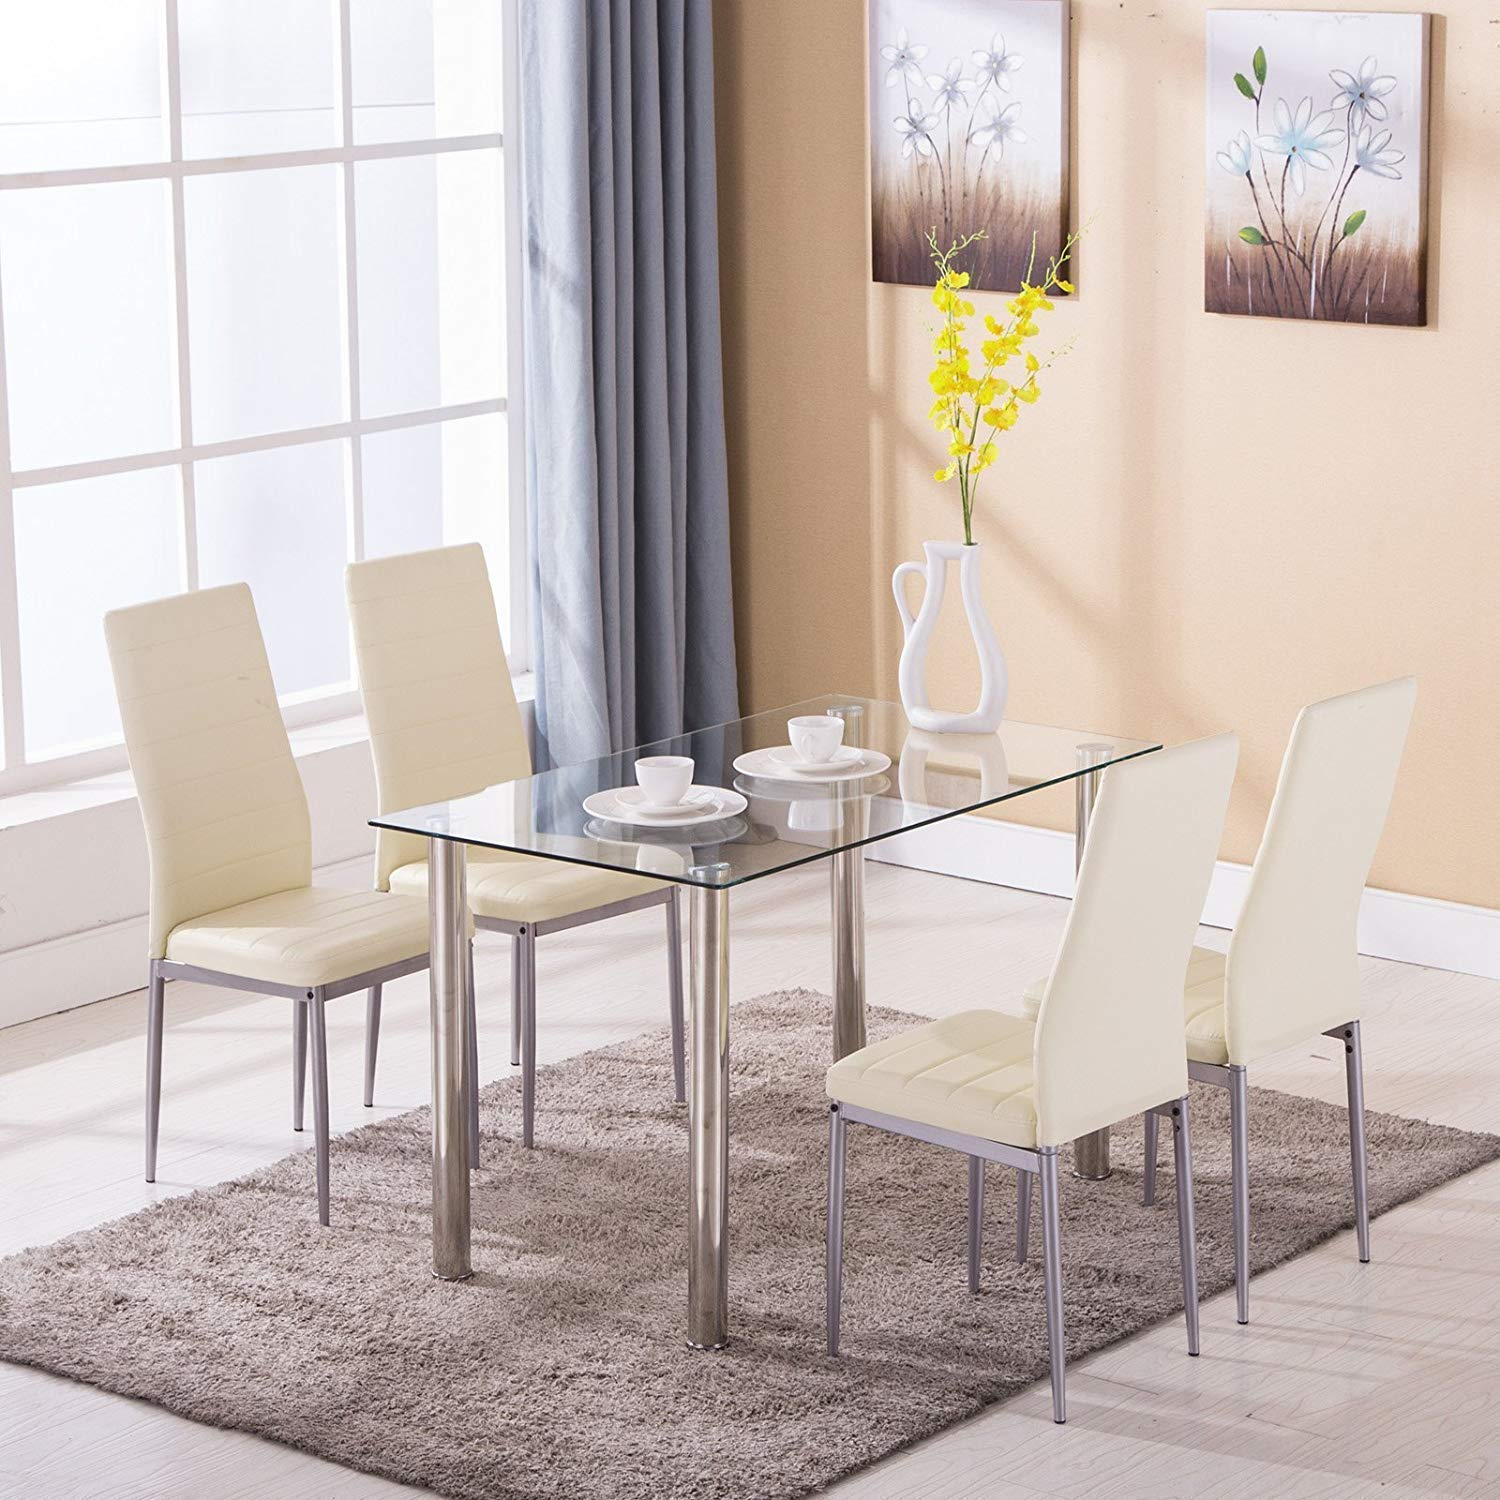 Mecor Dining Table Modern Minimallist Glass Kitchen Table Rectangular Transparent Metal Legs 47IN for 4/6 Persons,Clear by Mecor (Image #3)